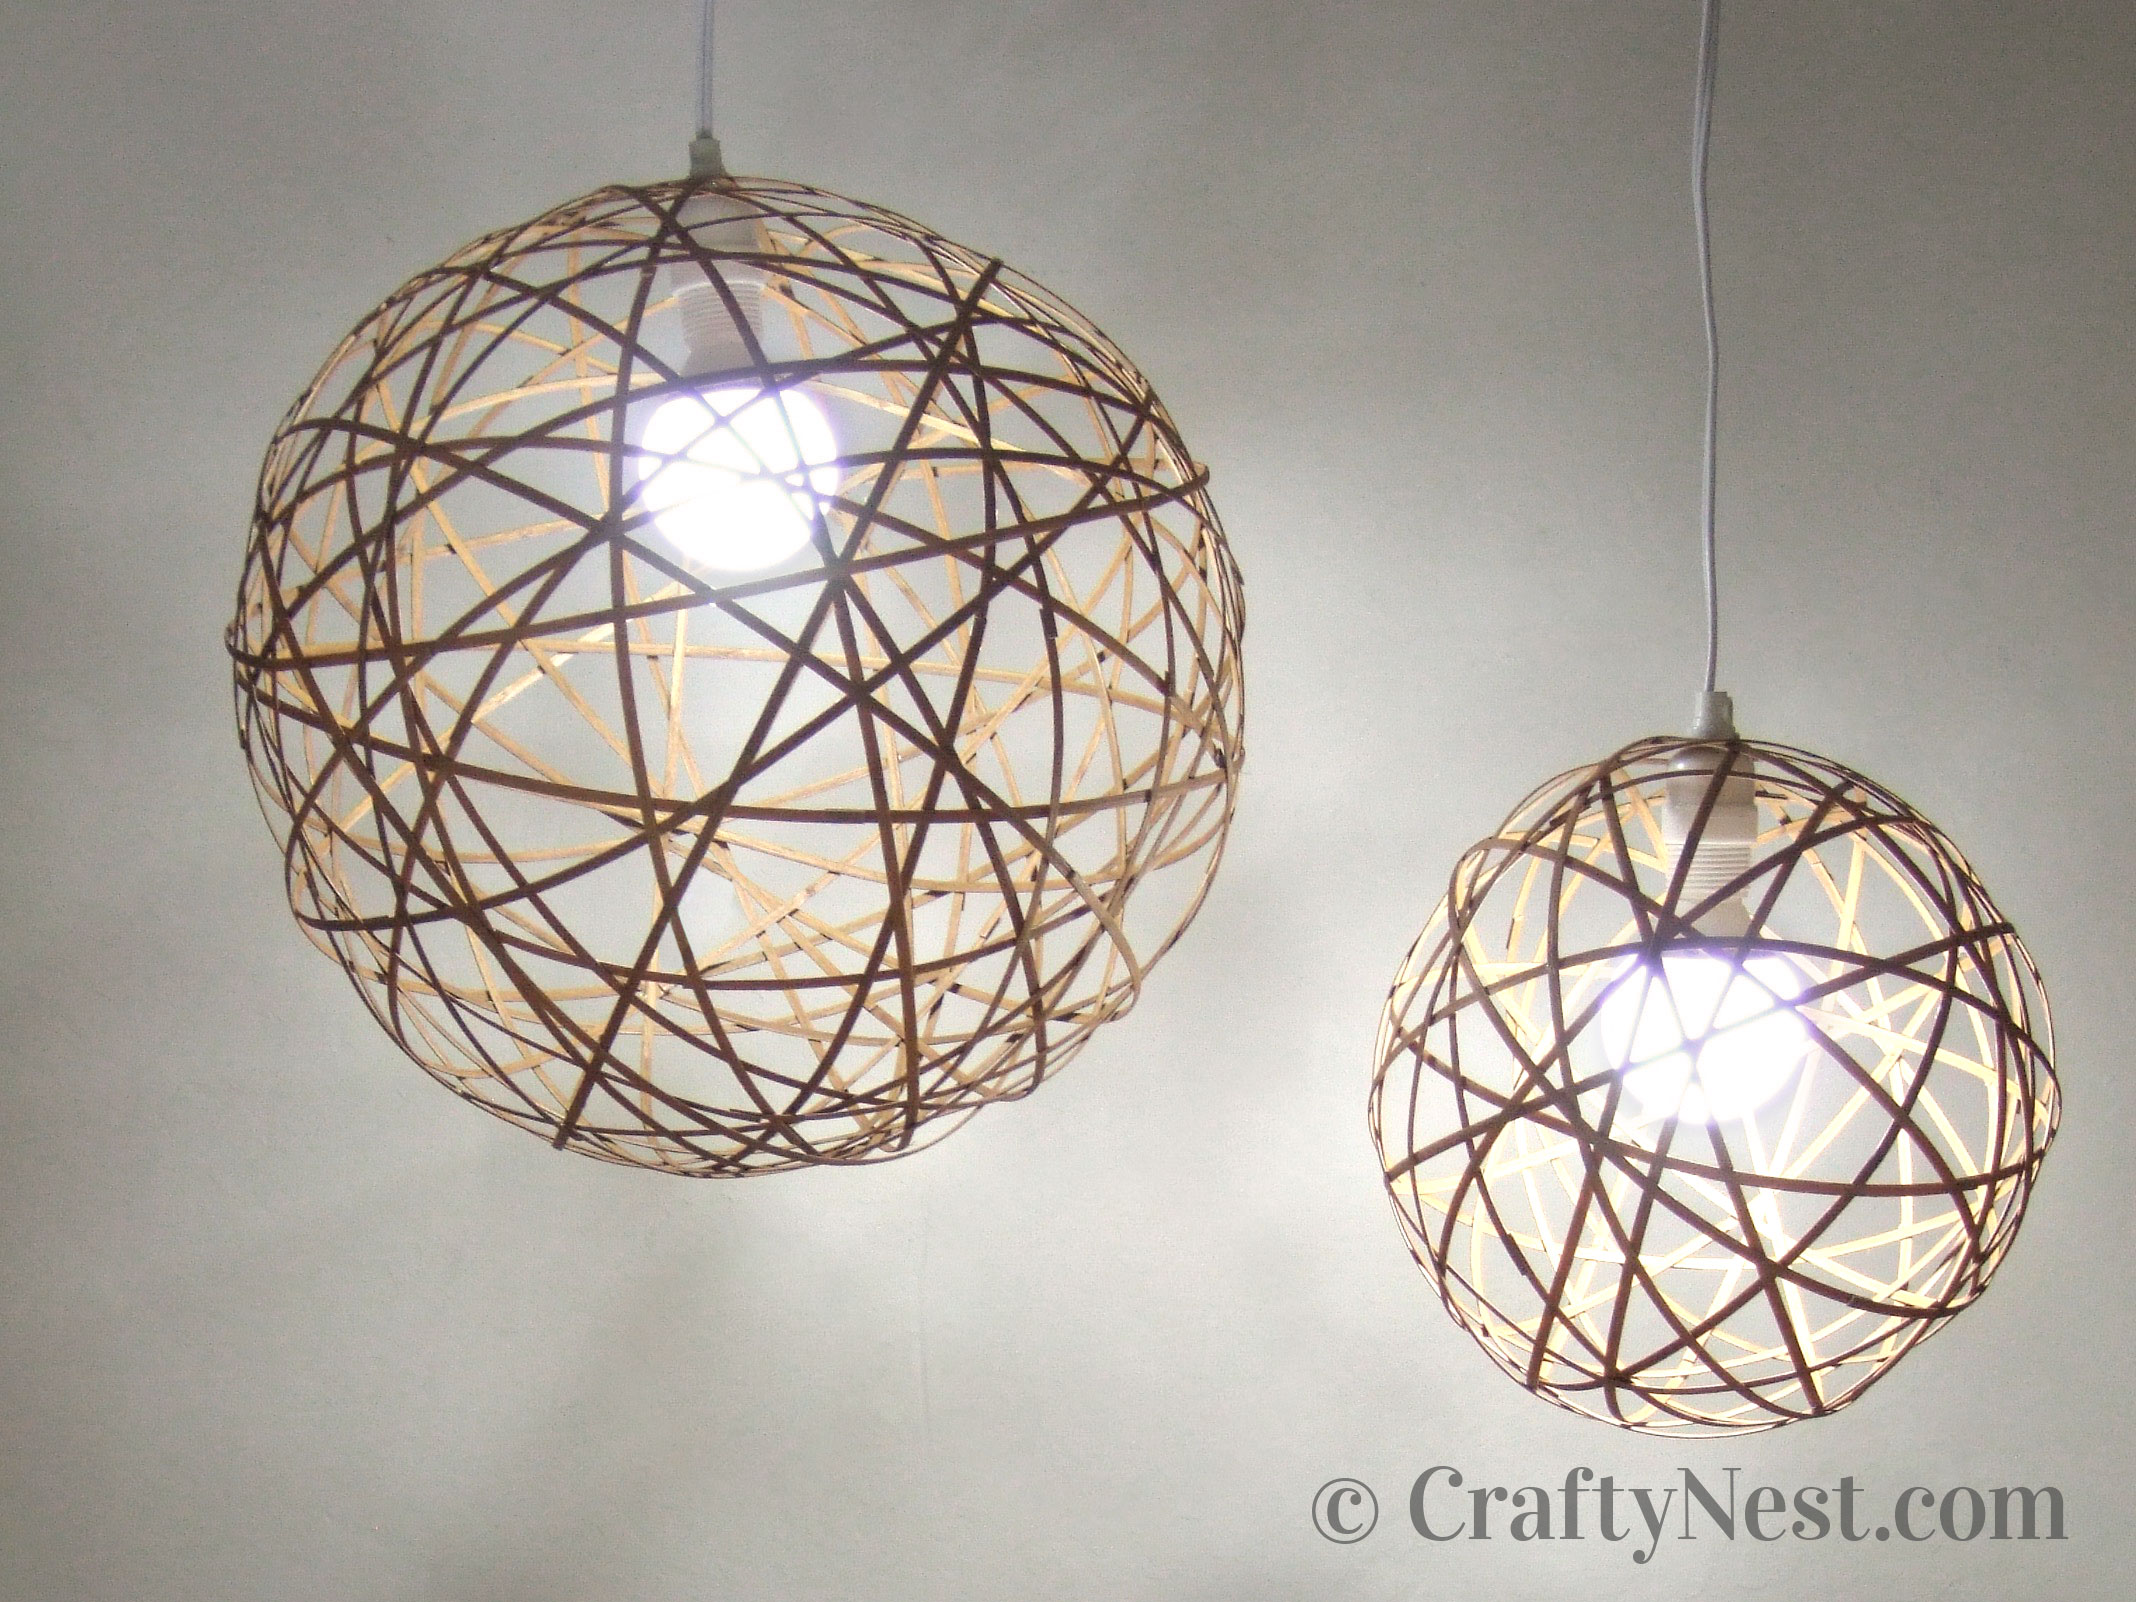 DIY bamboo orb pendant lights, photo